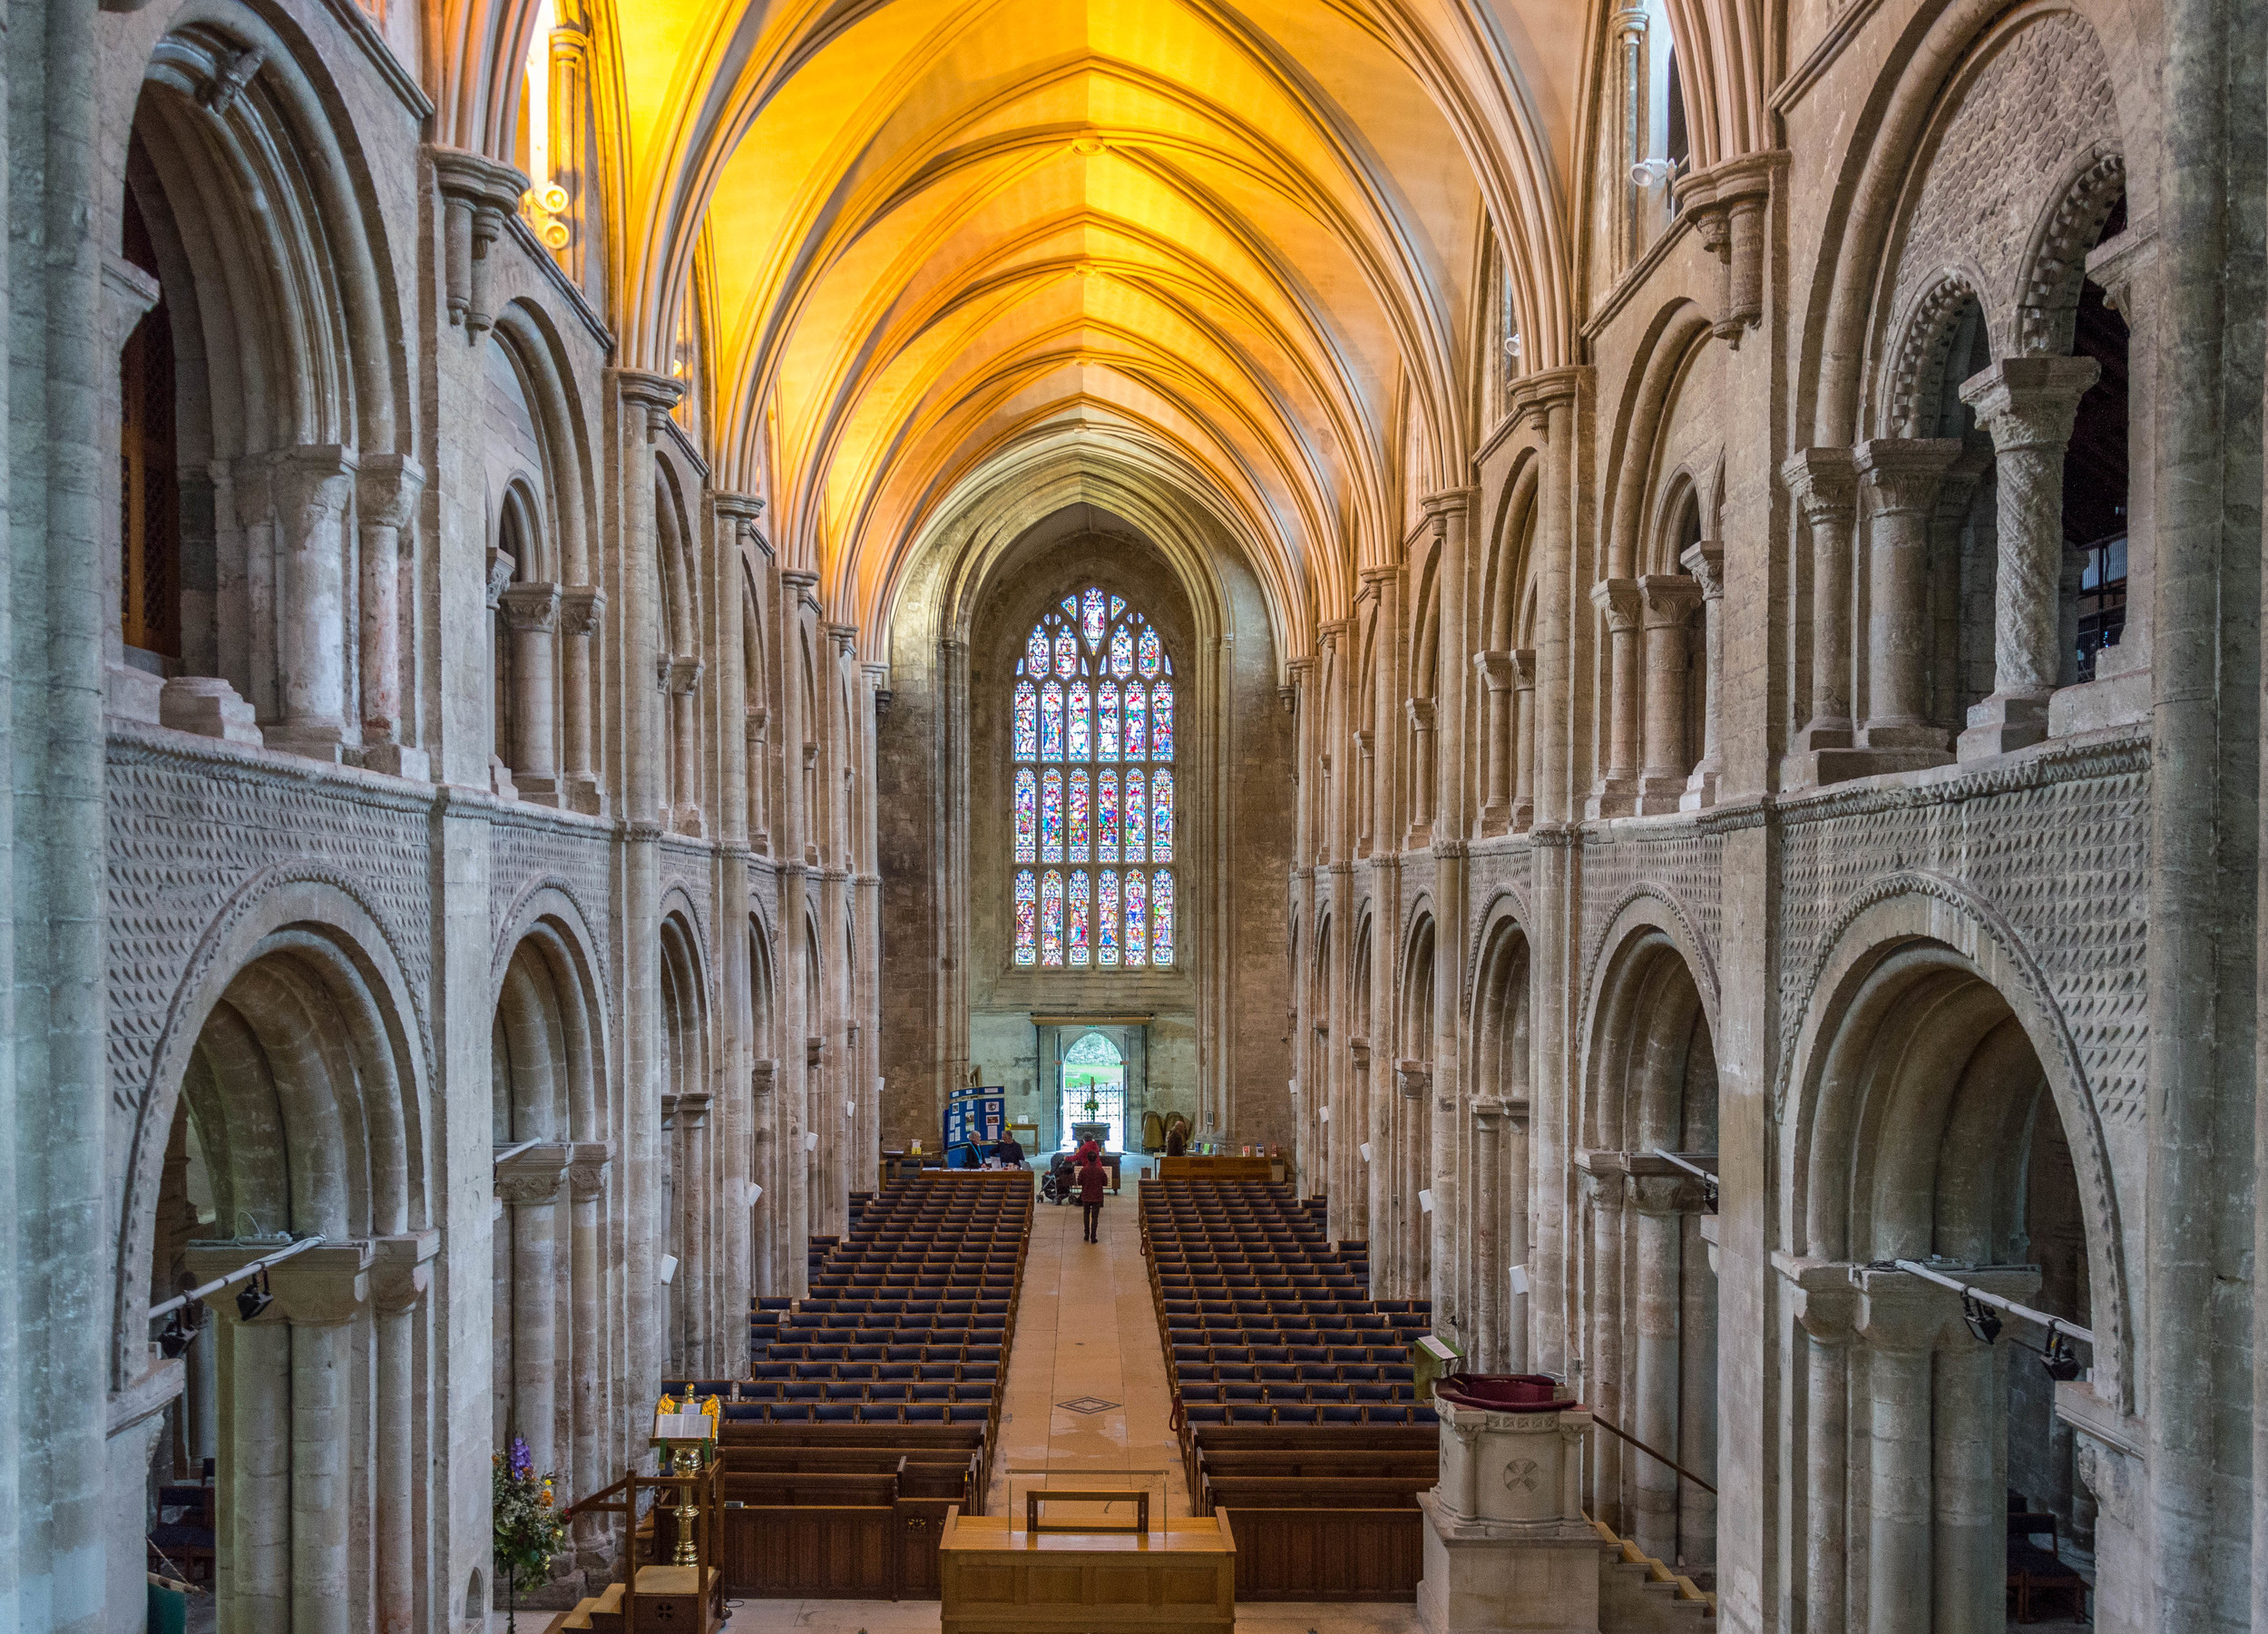 Christchurch Priory, image by JackPeasePhotography